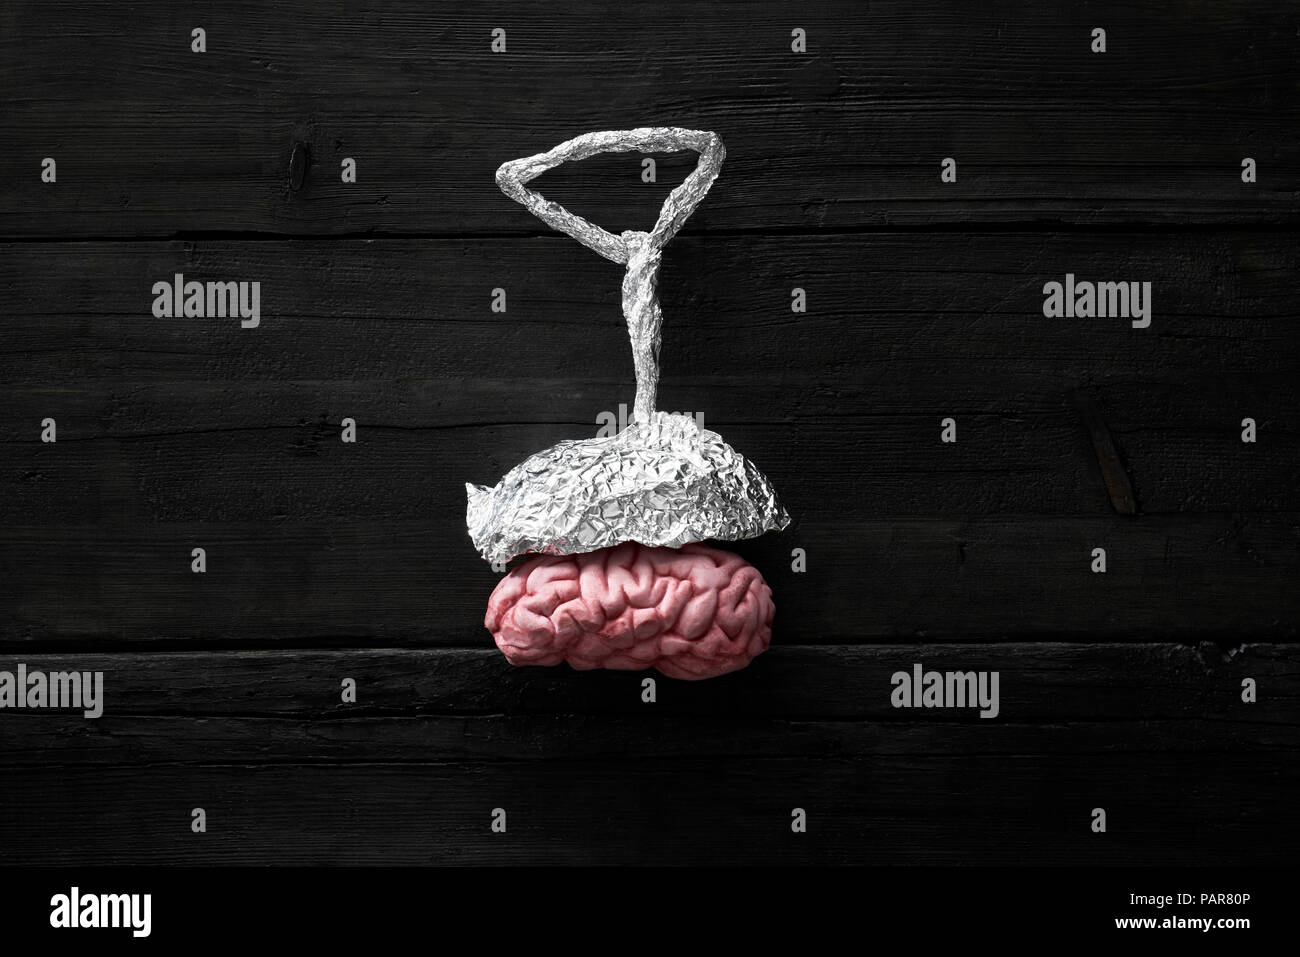 Aluminium bonnet on a brain, brain wash and conspiracy theories - Stock Image